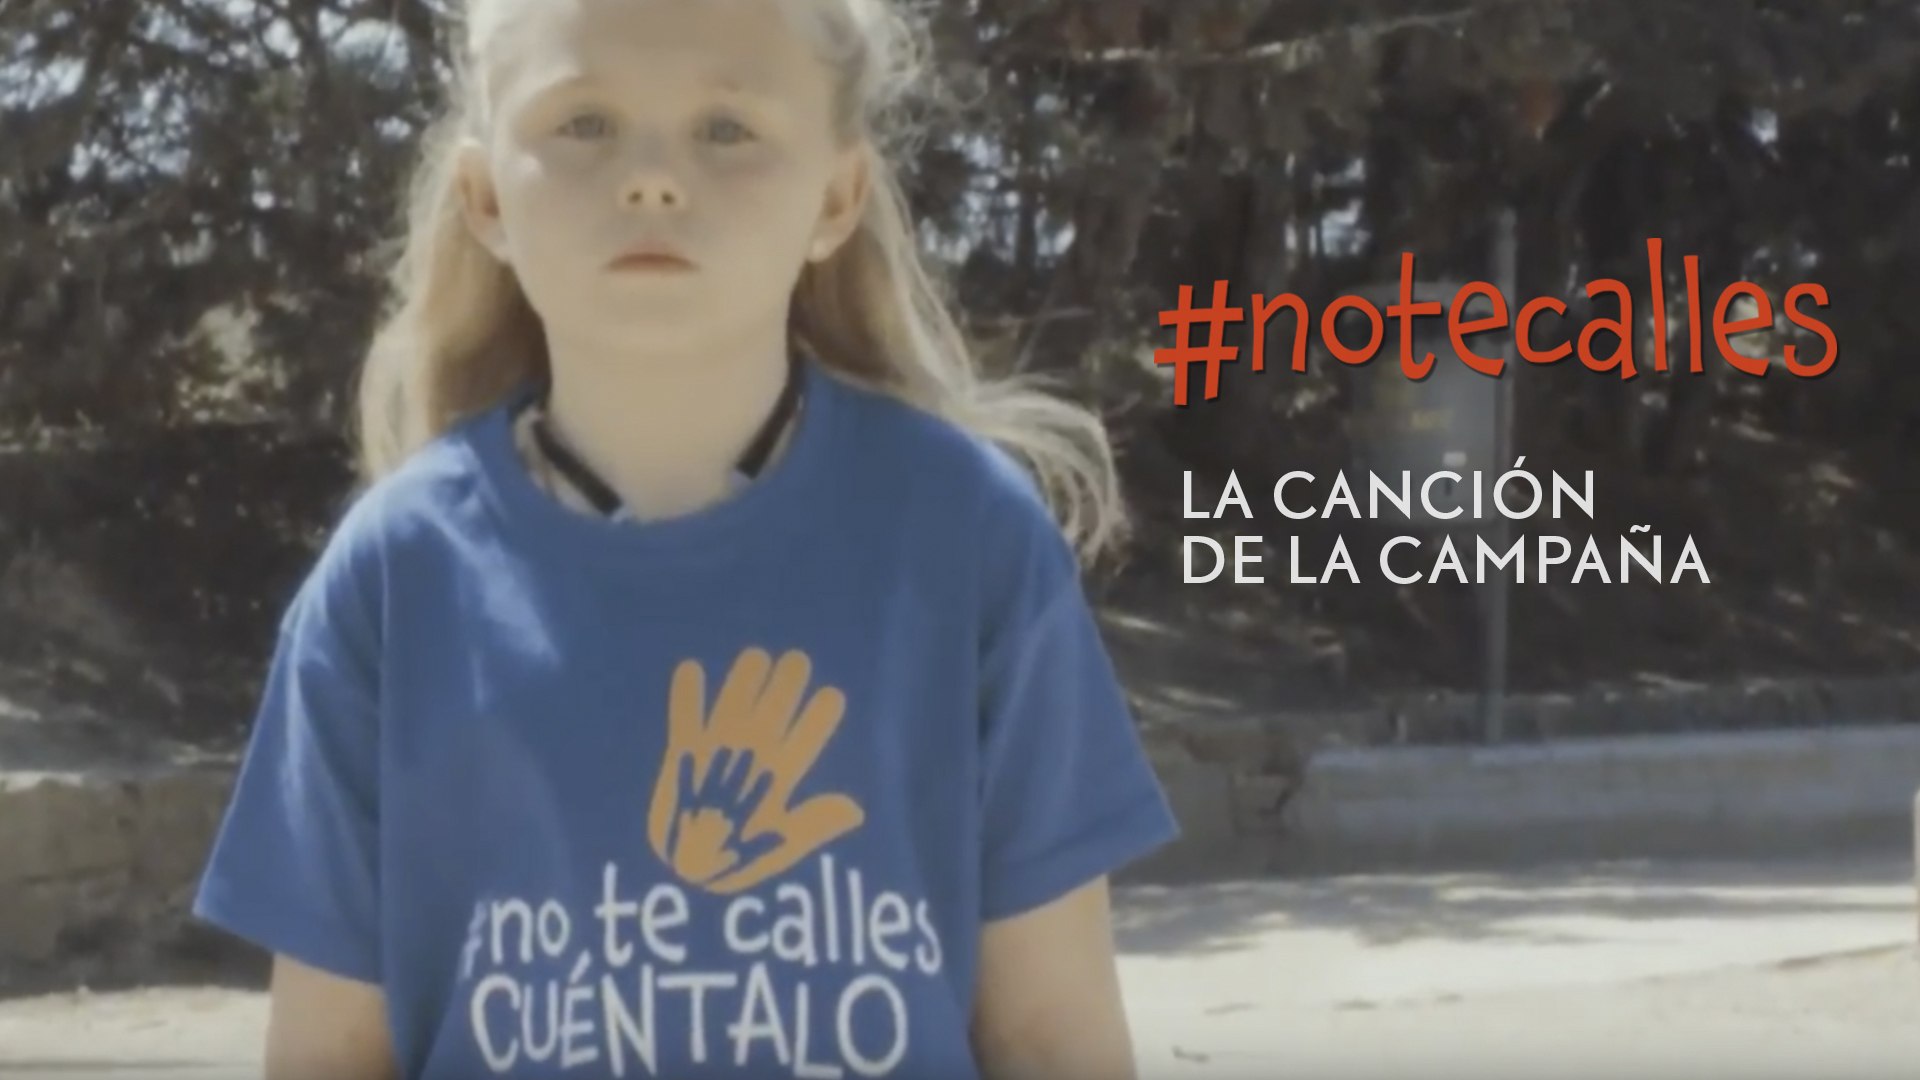 Canción #notecalles